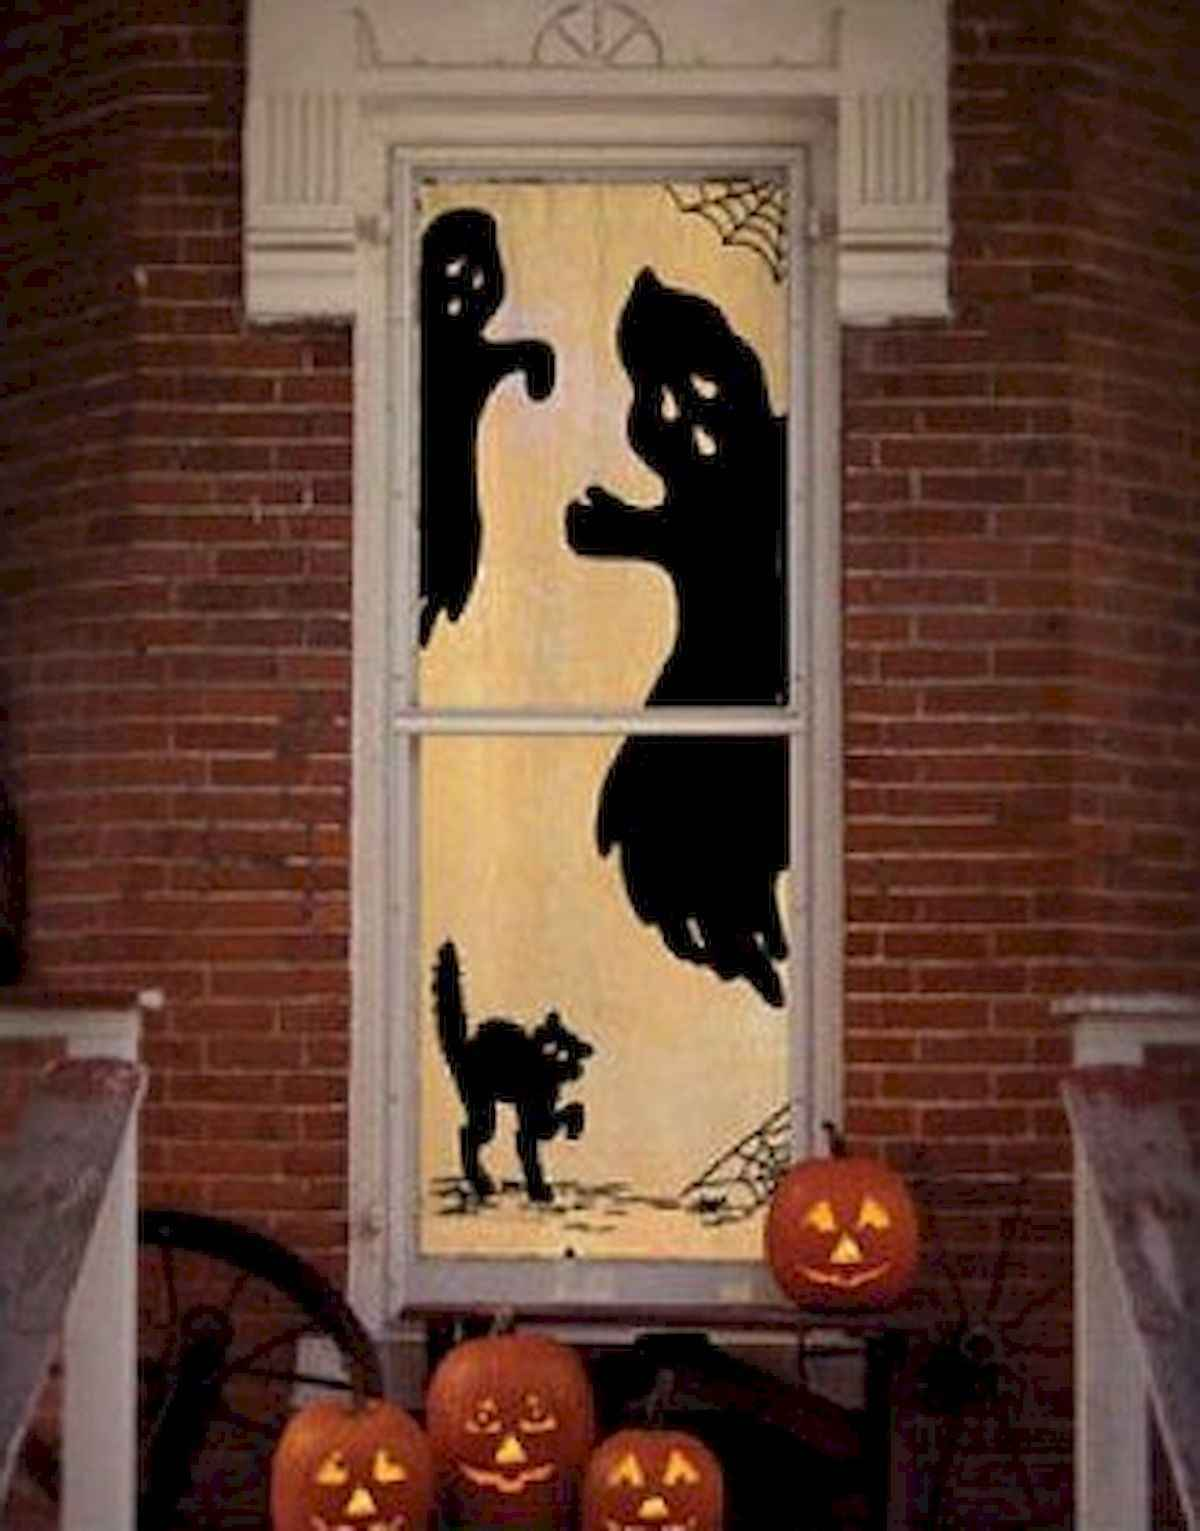 20 Creative Halloween Decorations to Get Your Home Ready for the Holiday (17)